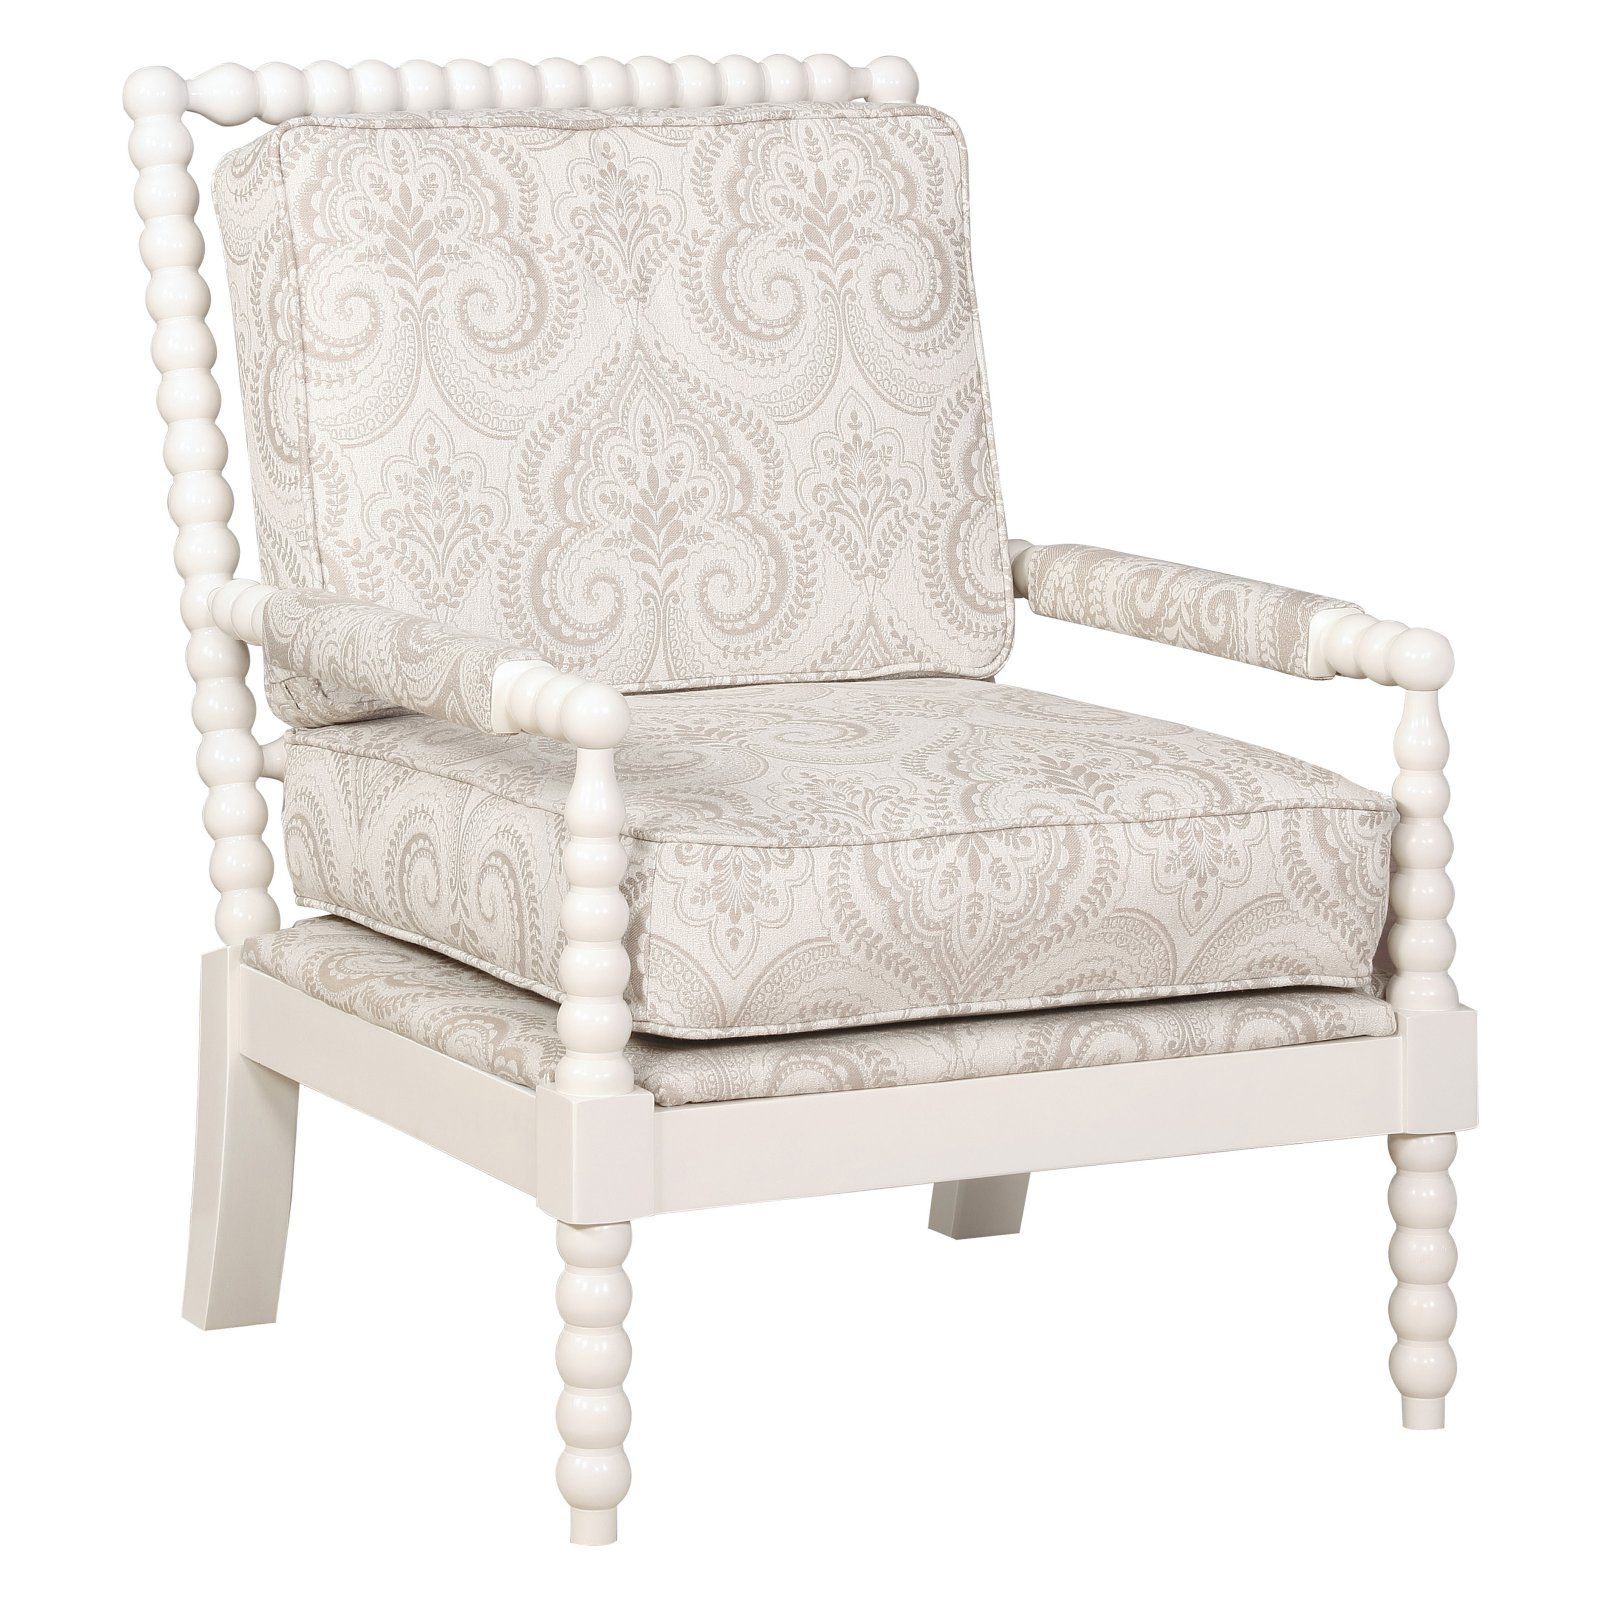 Linon Sussex Spindle Wood Frame Chair, 19.75 inch Seat